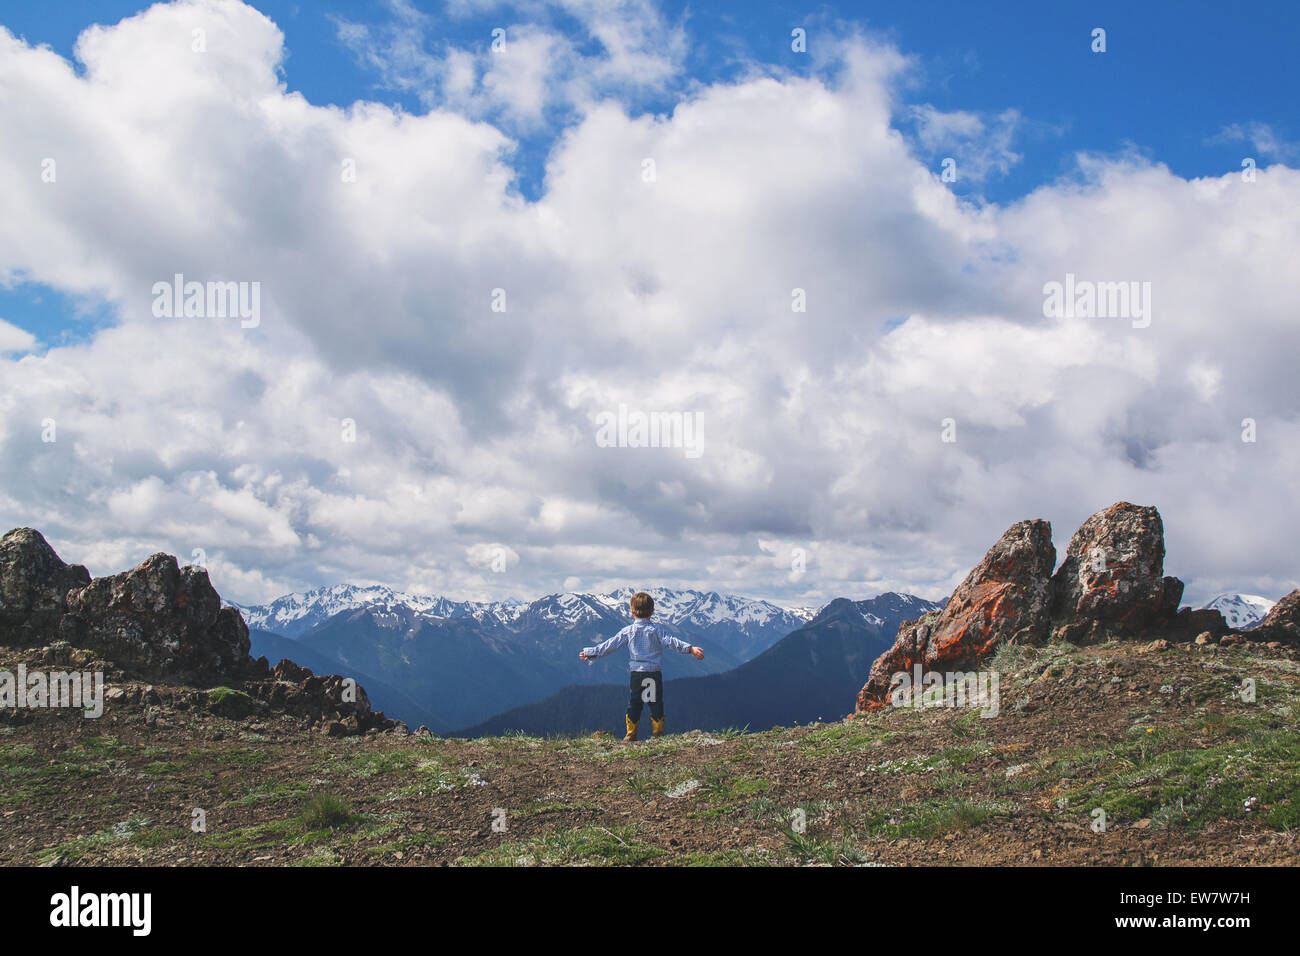 Boy standing on cliff on the top of a mountain - Stock Image